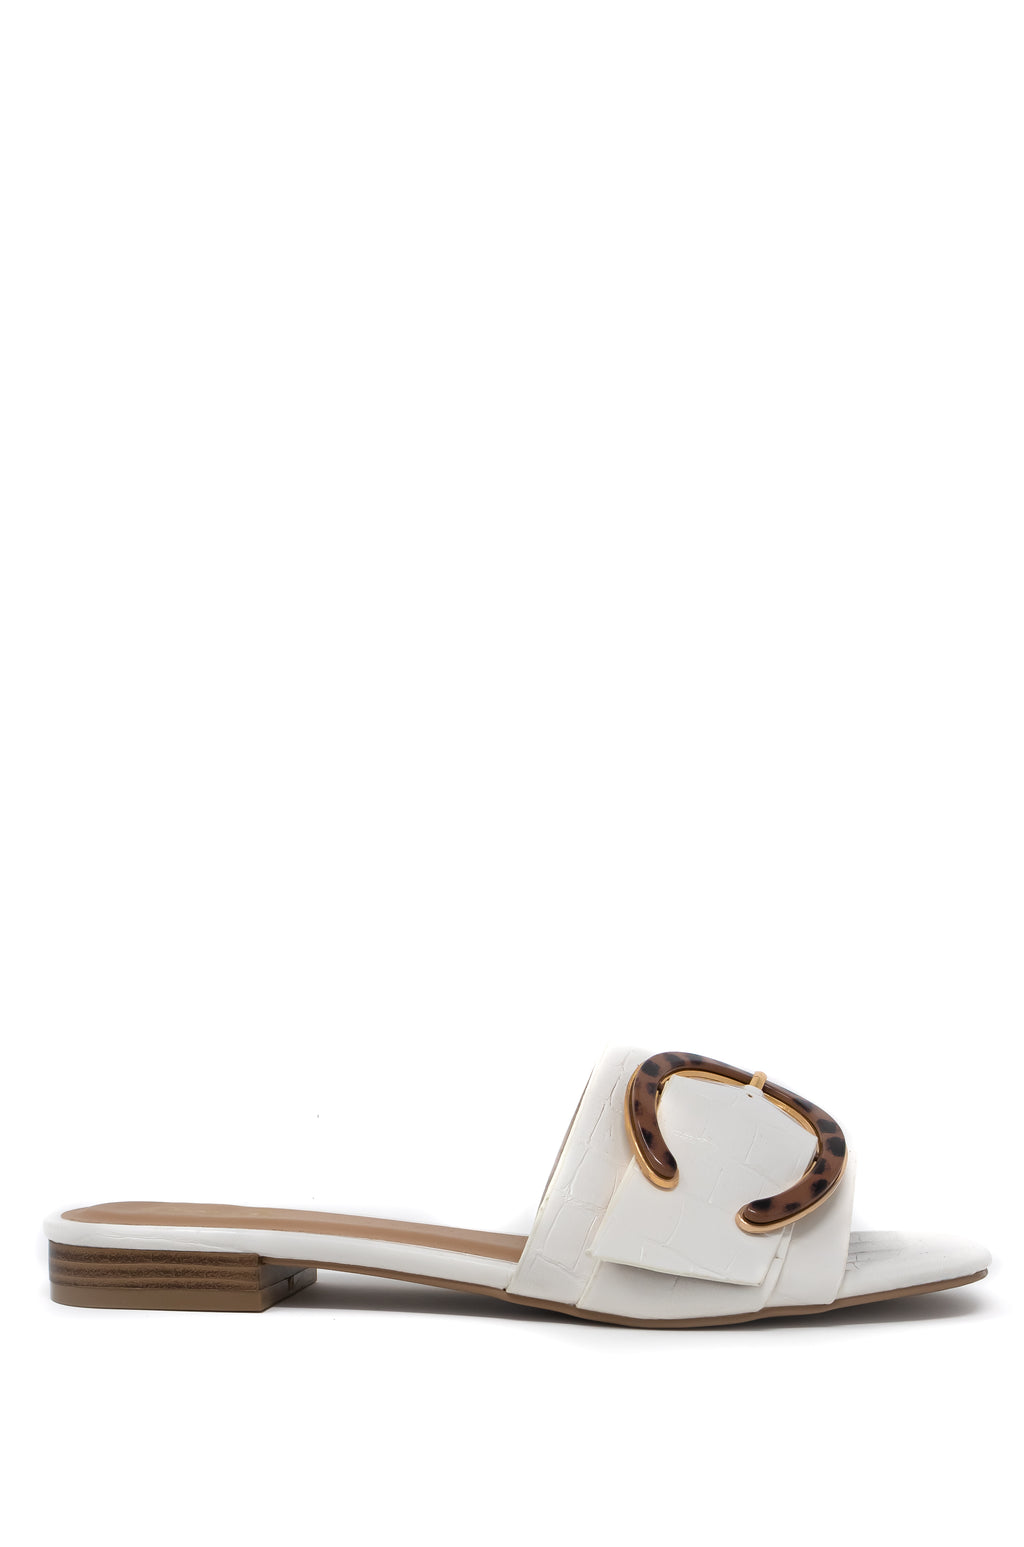 Mesmerized - White Croco Sandals